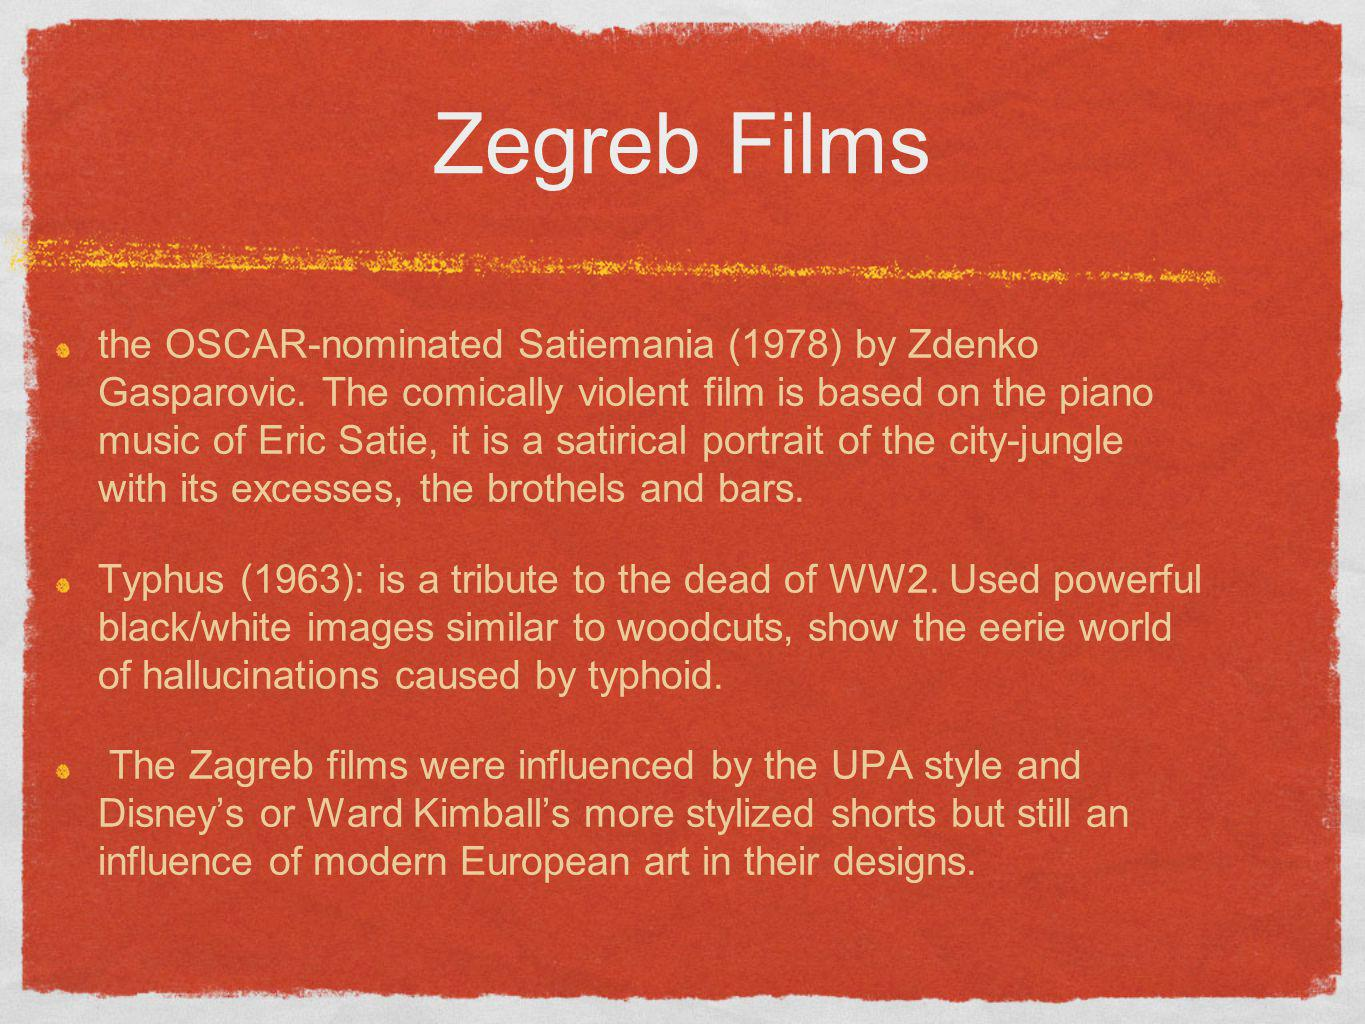 Zegreb Films the OSCAR-nominated Satiemania (1978) by Zdenko Gasparovic. The comically violent film is based on the piano music of Eric Satie, it is a